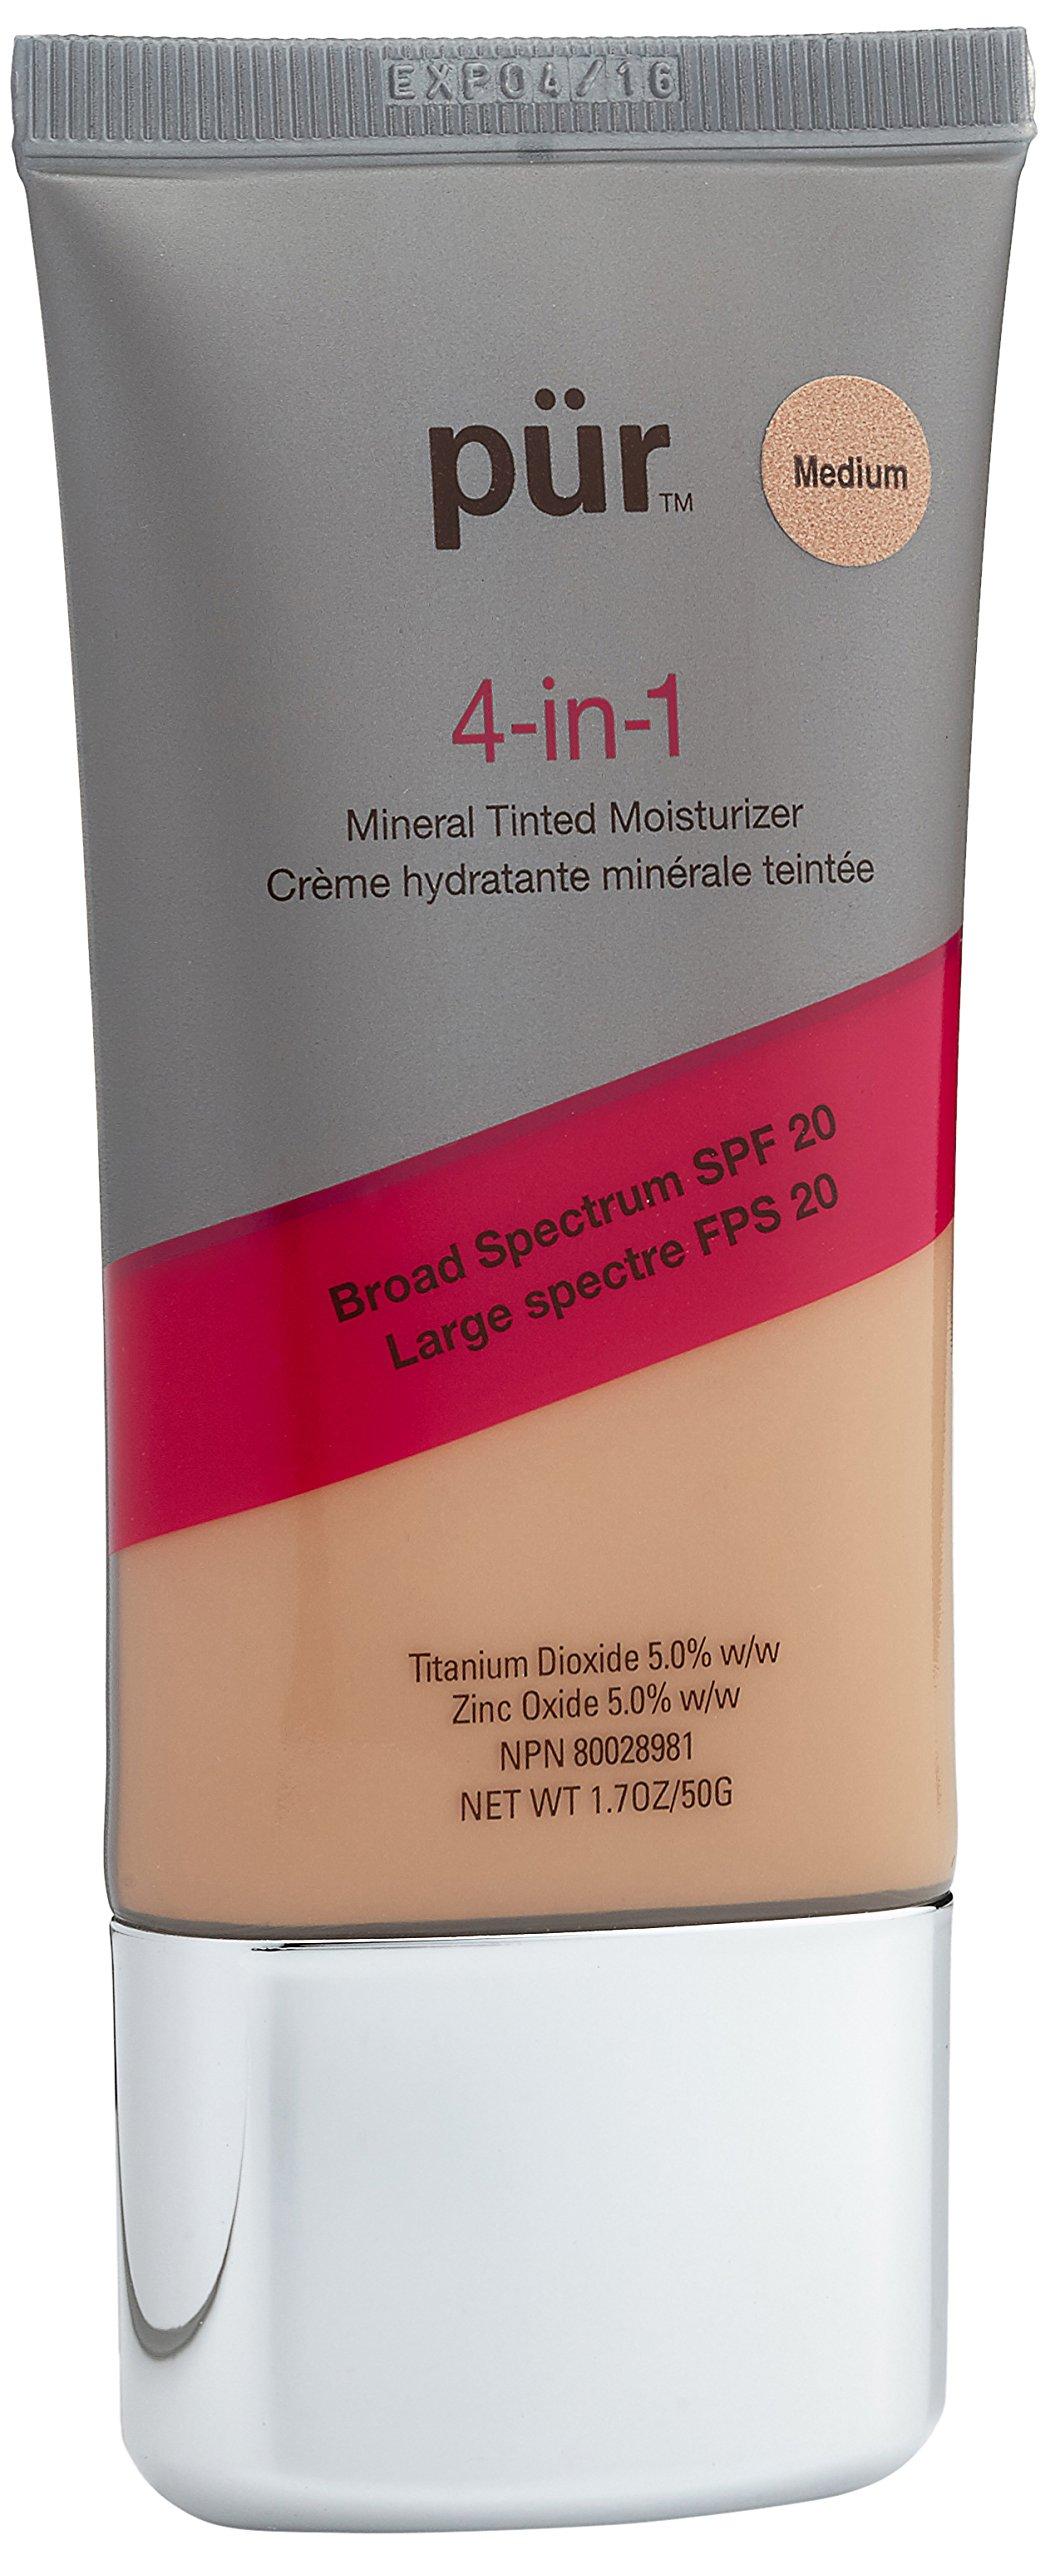 Pur Minerals 4-In-1 Tinted Moisturizer Med, 1 Ounce